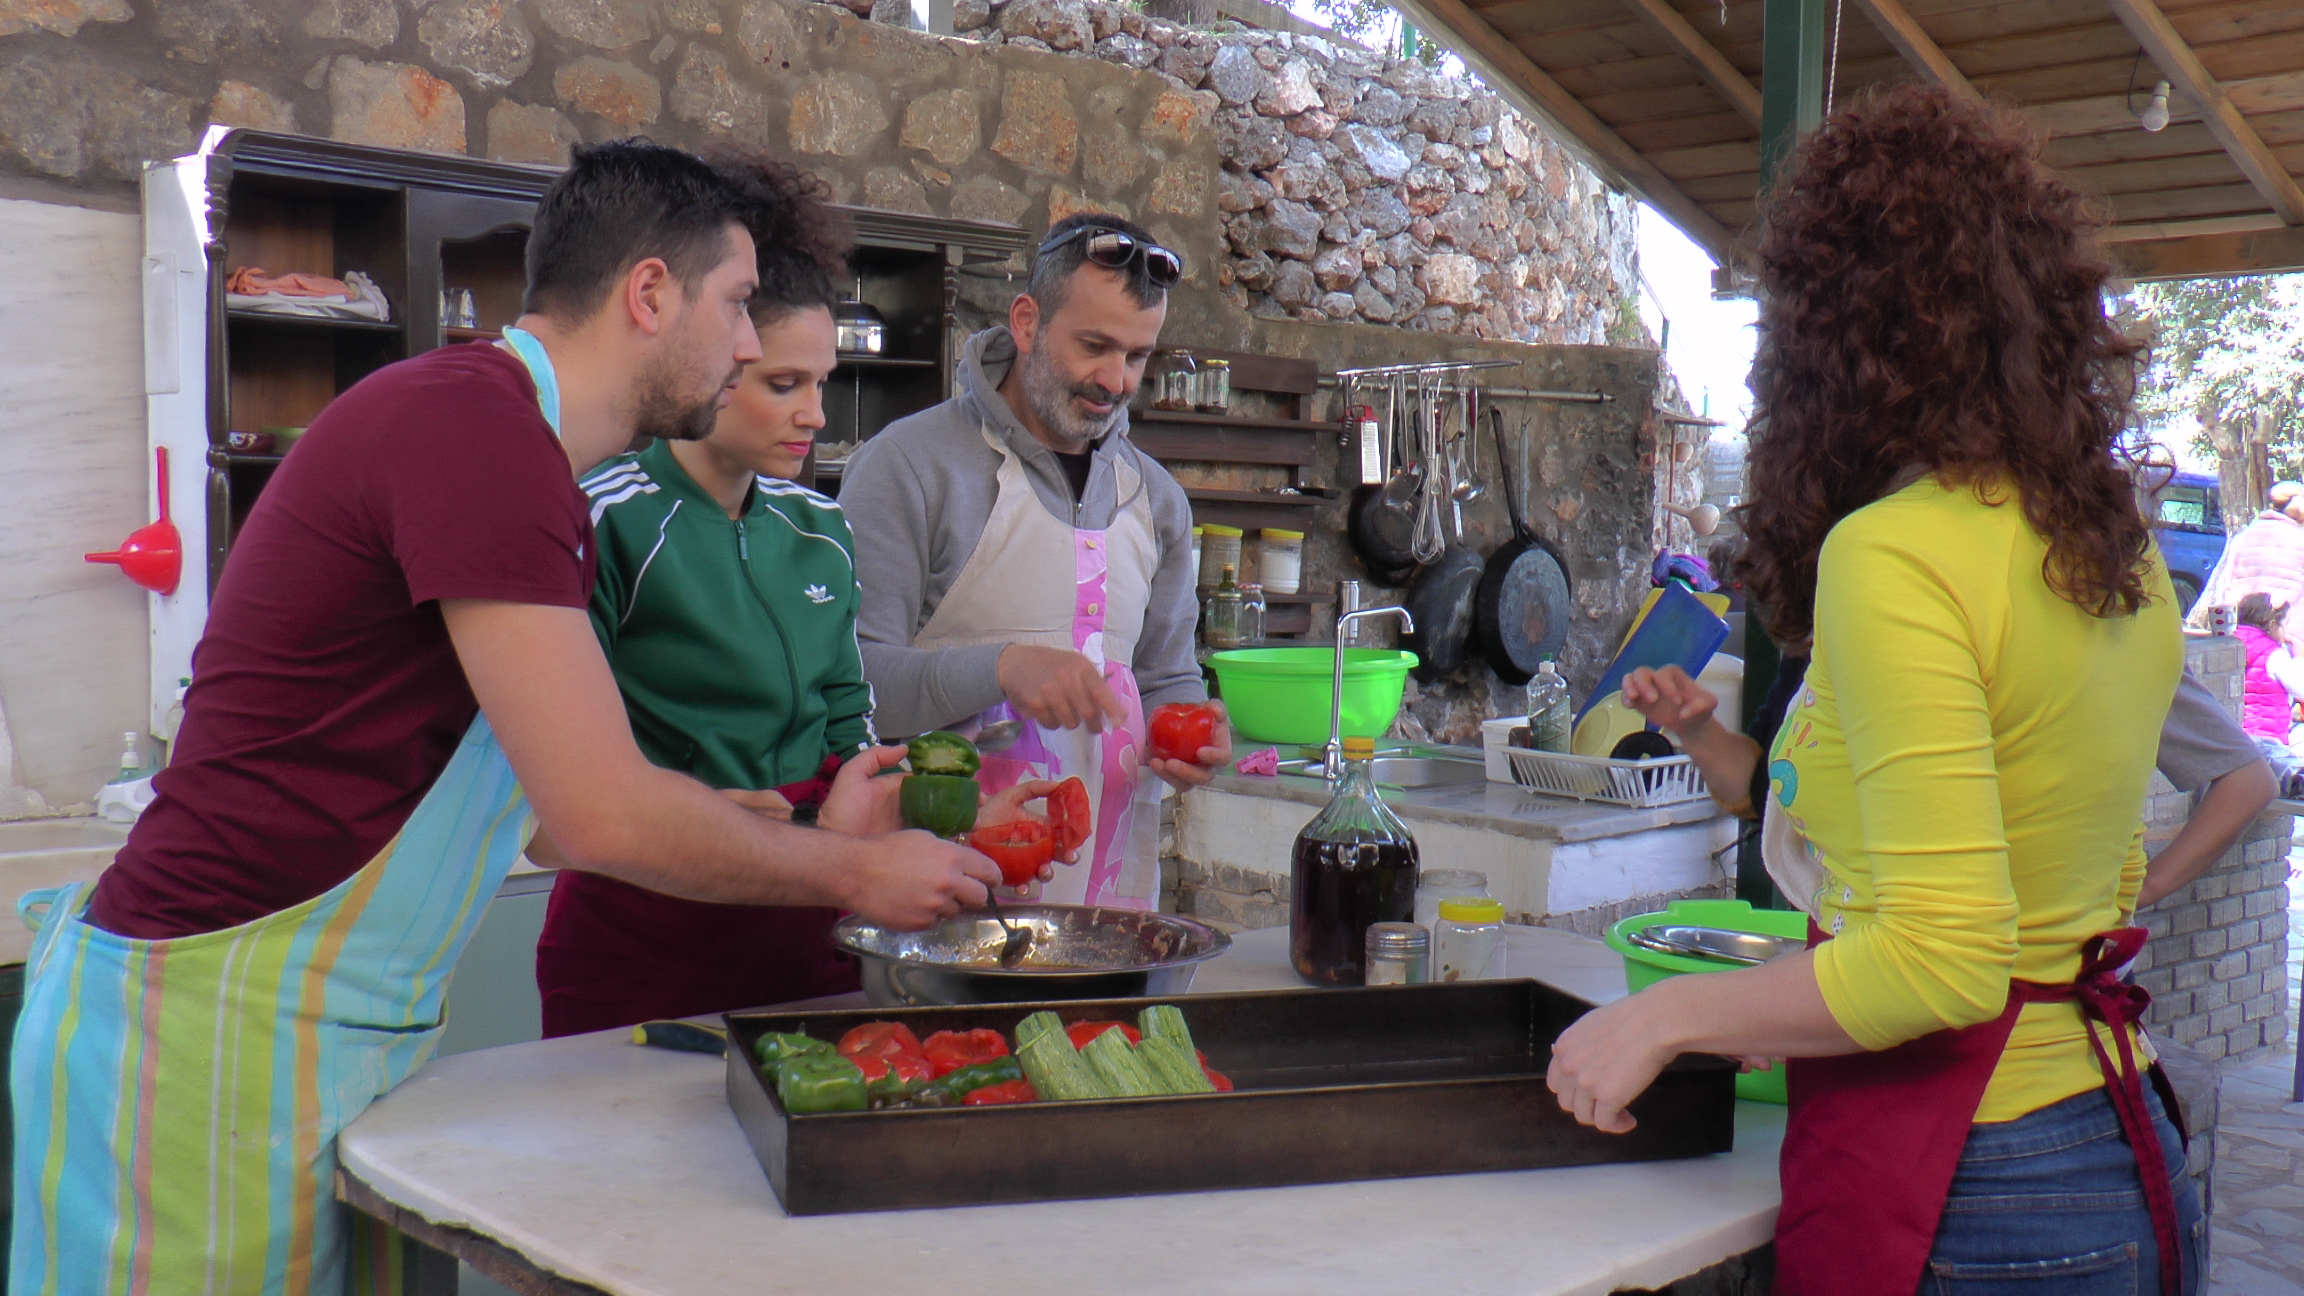 Cooking class in Messinia